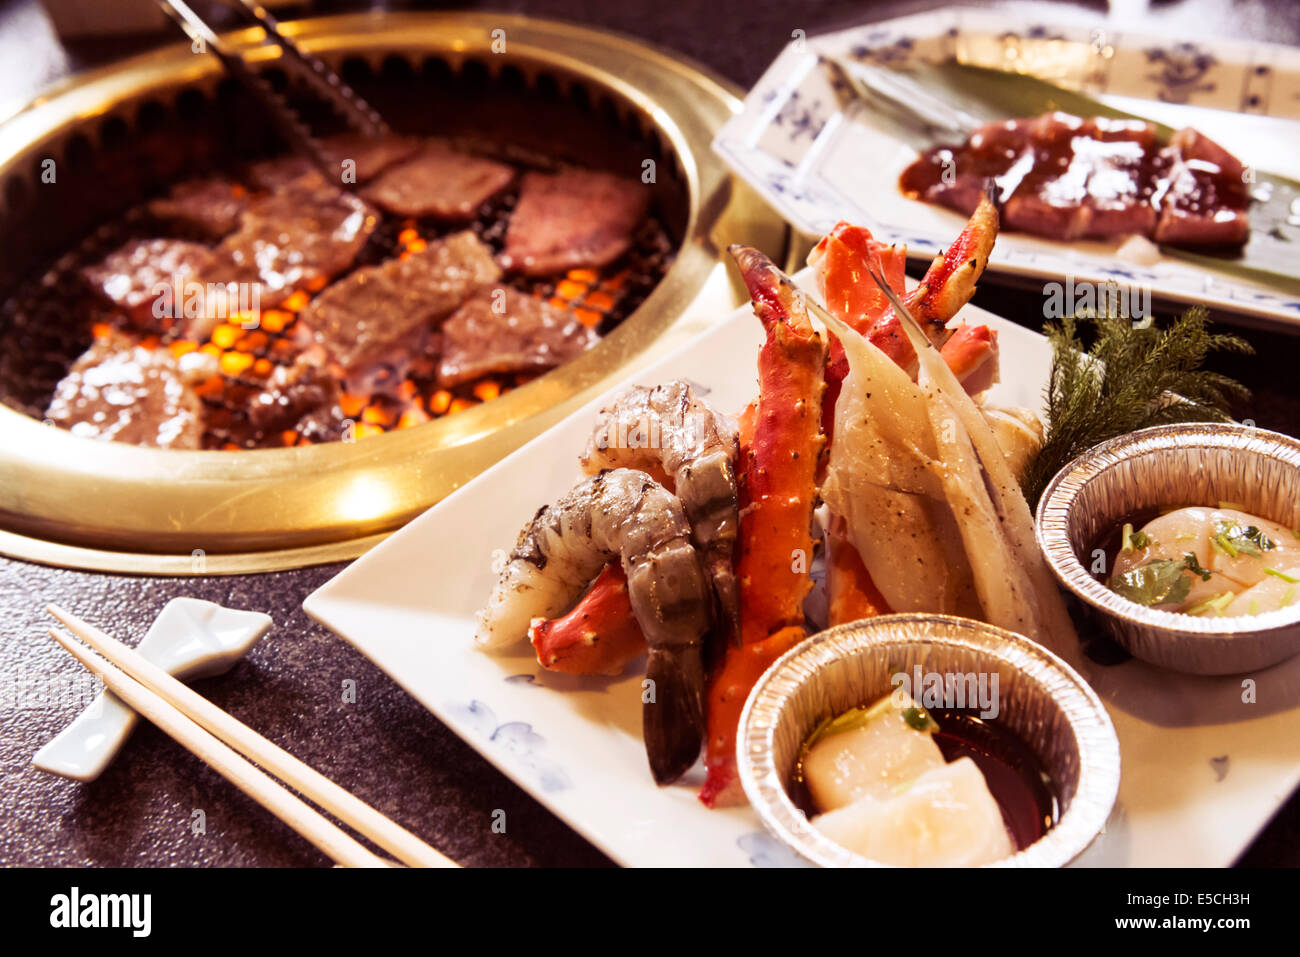 Beef And Seafood Being Cooked At A Japanese Grill Restaurant Stock Photo Alamy